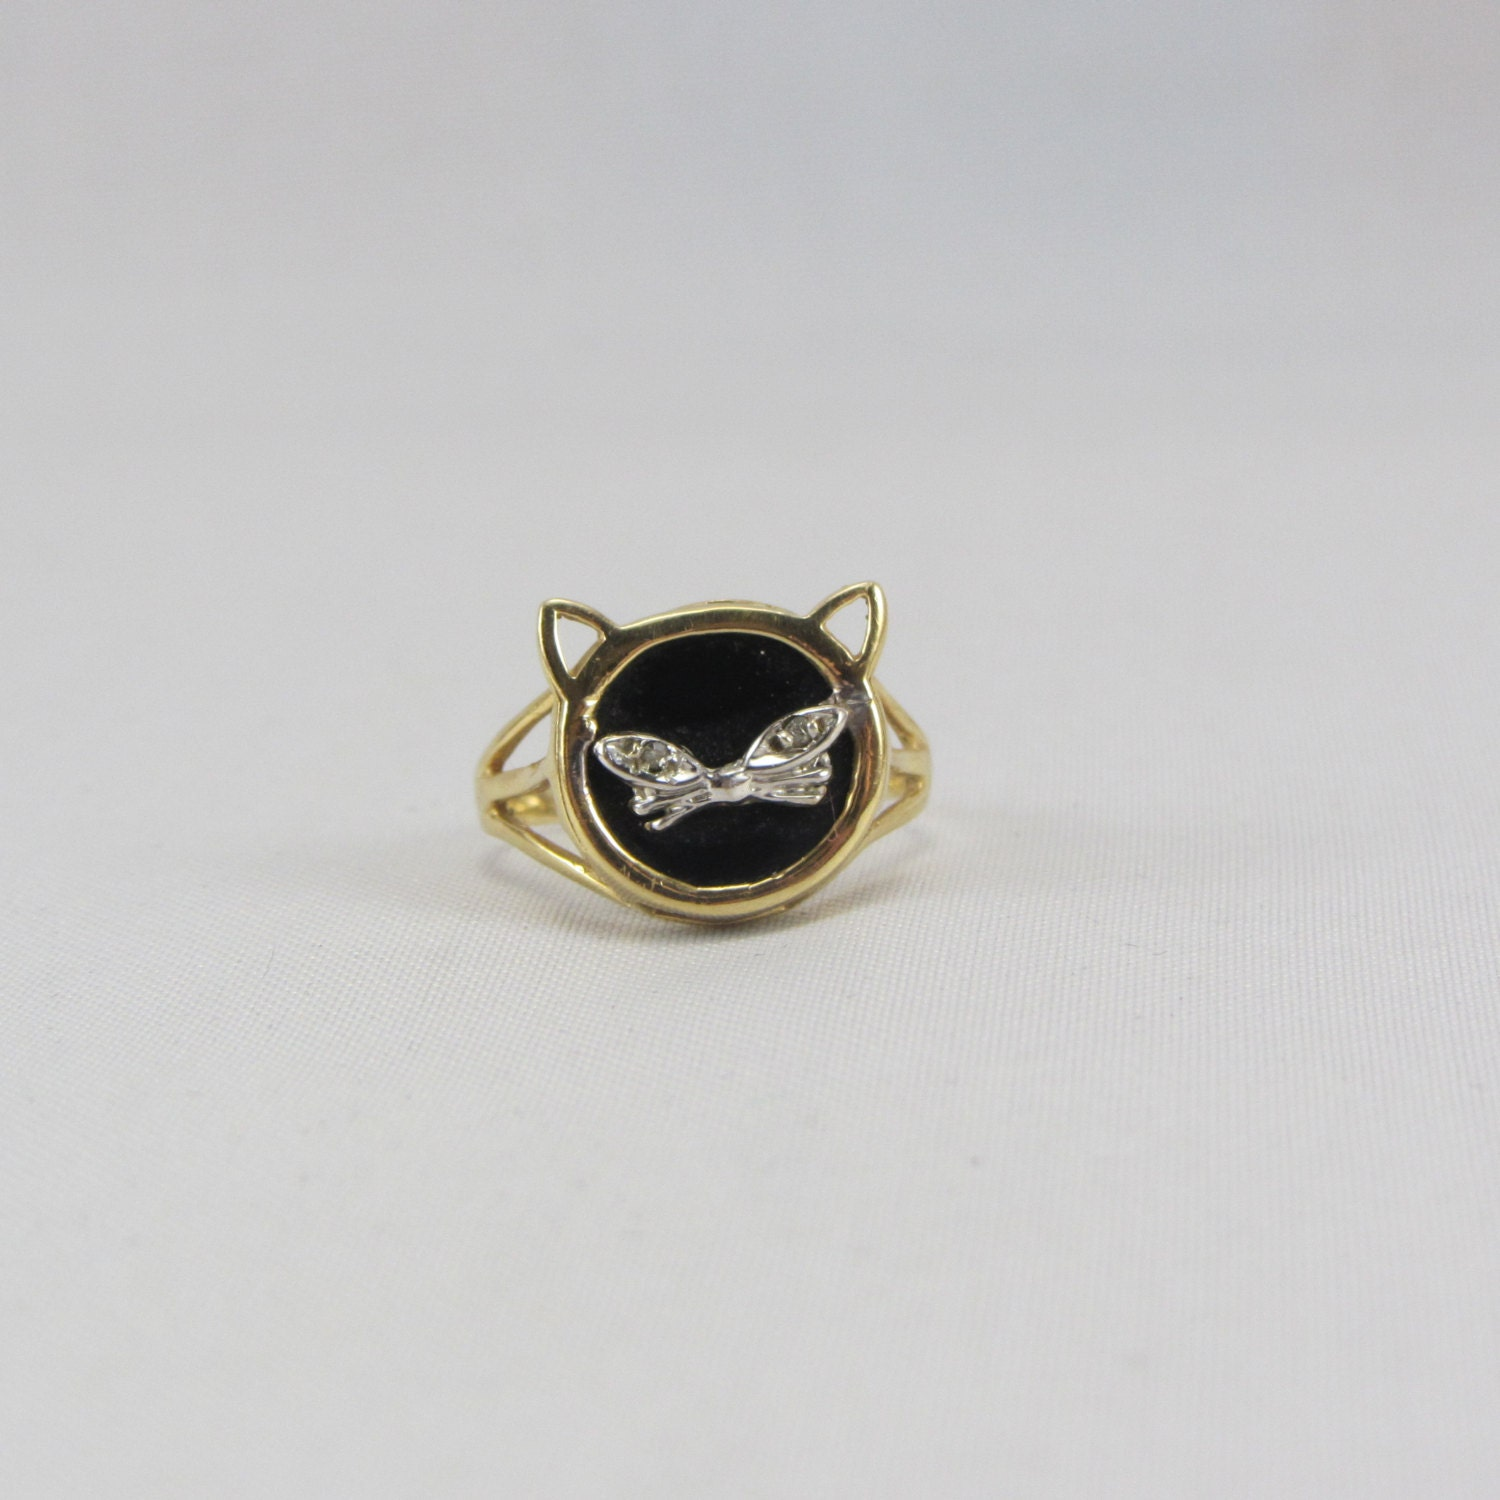 Vintage 14k Gold Cat Ring With Onyx And Diamond Eyes Size 7